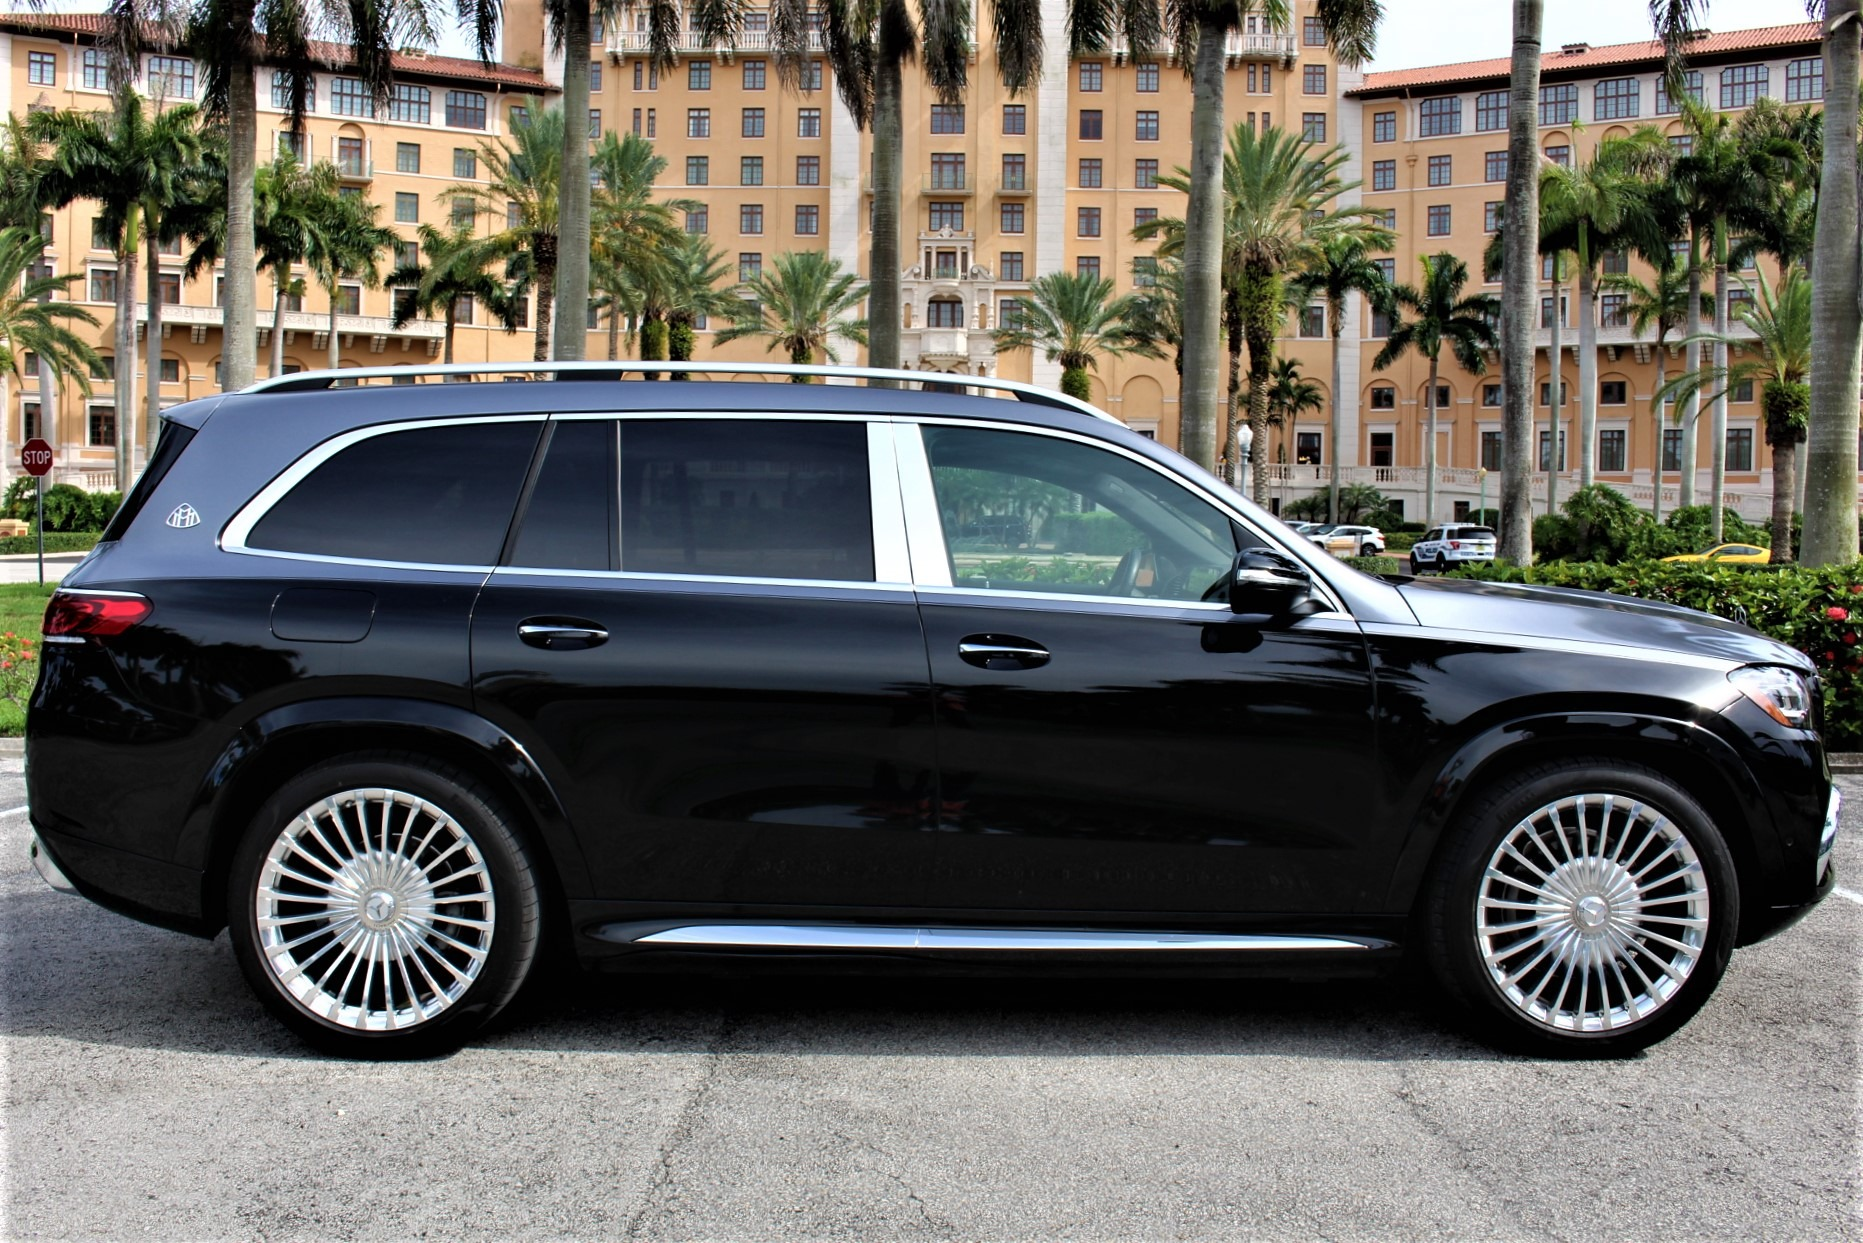 Used 2021 Mercedes-Benz GLS Mercedes-Maybach GLS 600 4MATIC for sale $234,850 at The Gables Sports Cars in Miami FL 33146 1